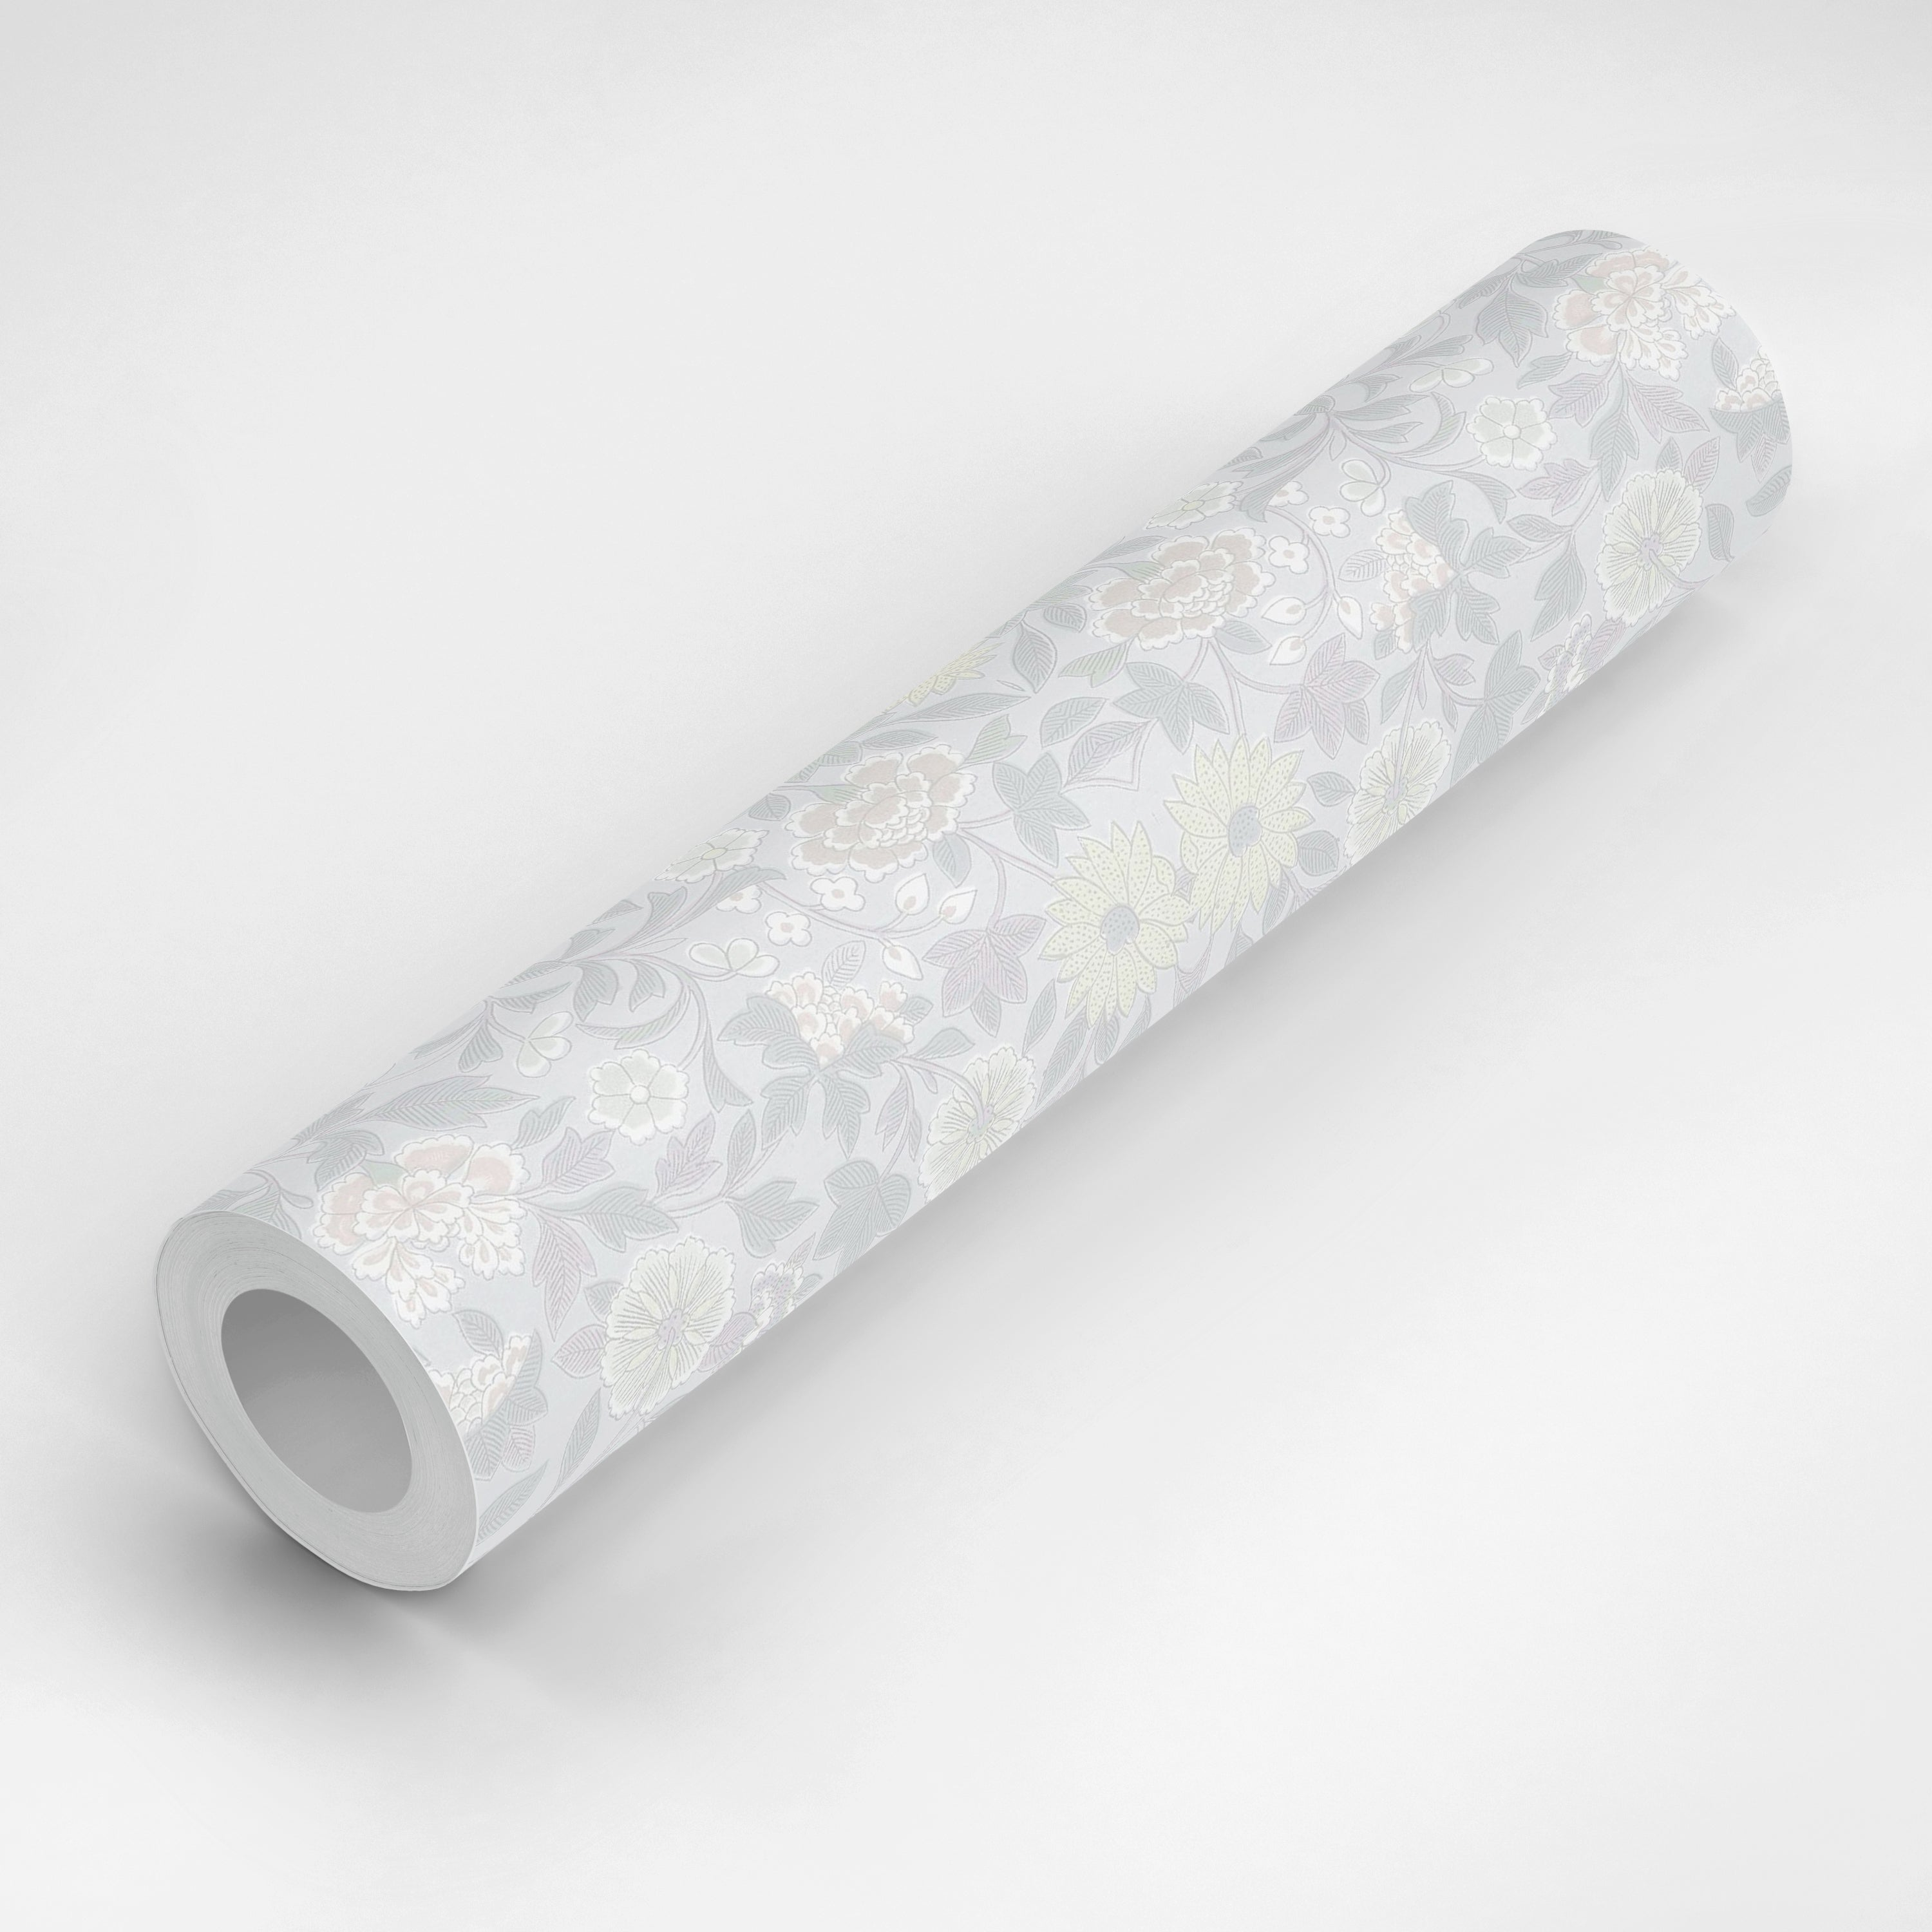 Daisy Chain Wallpaper - MB SIGNATURE